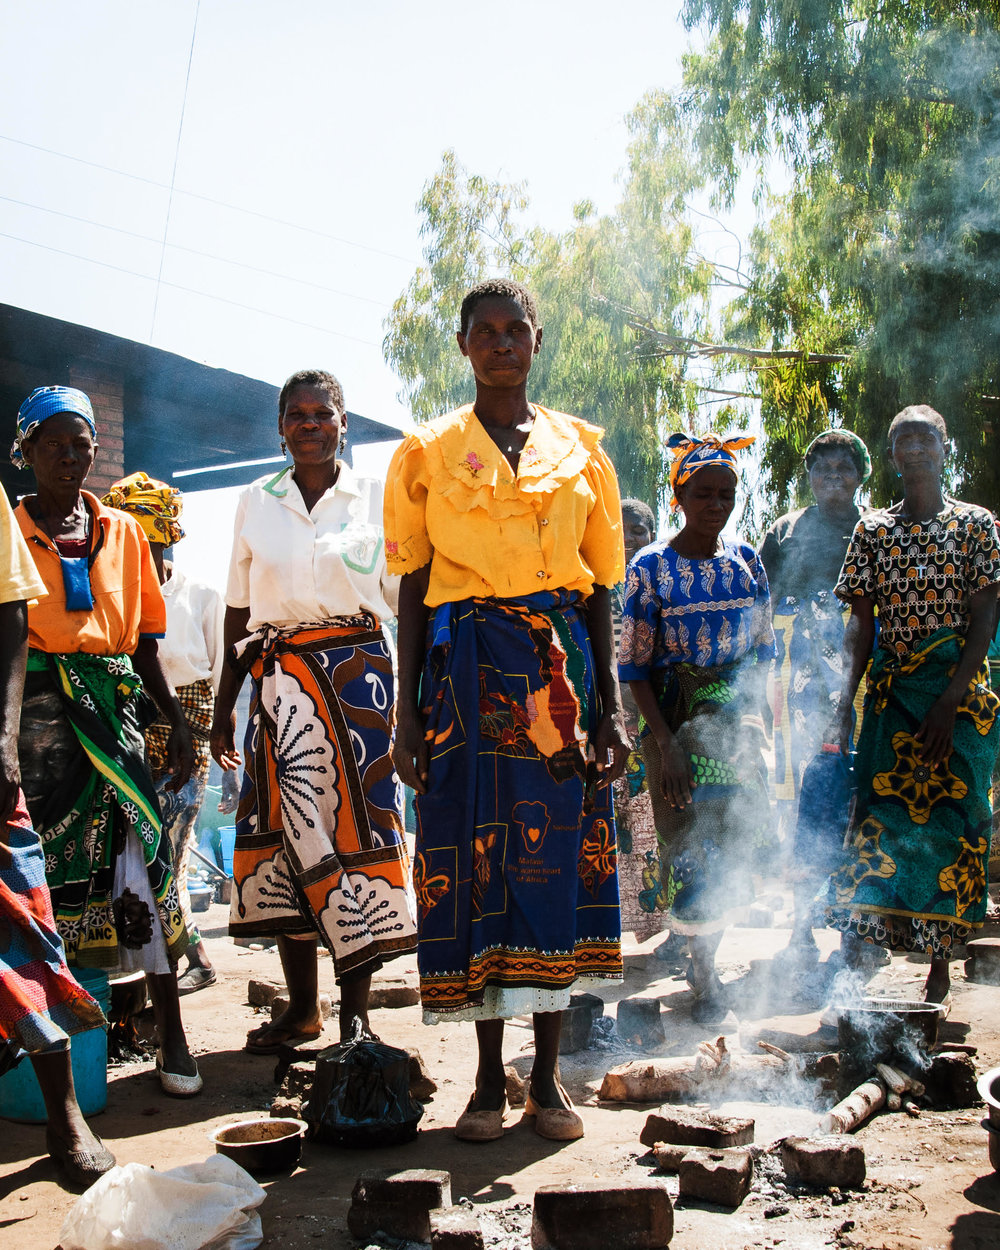 Women cooking outside a hospital in Malawi, Africa 2011.